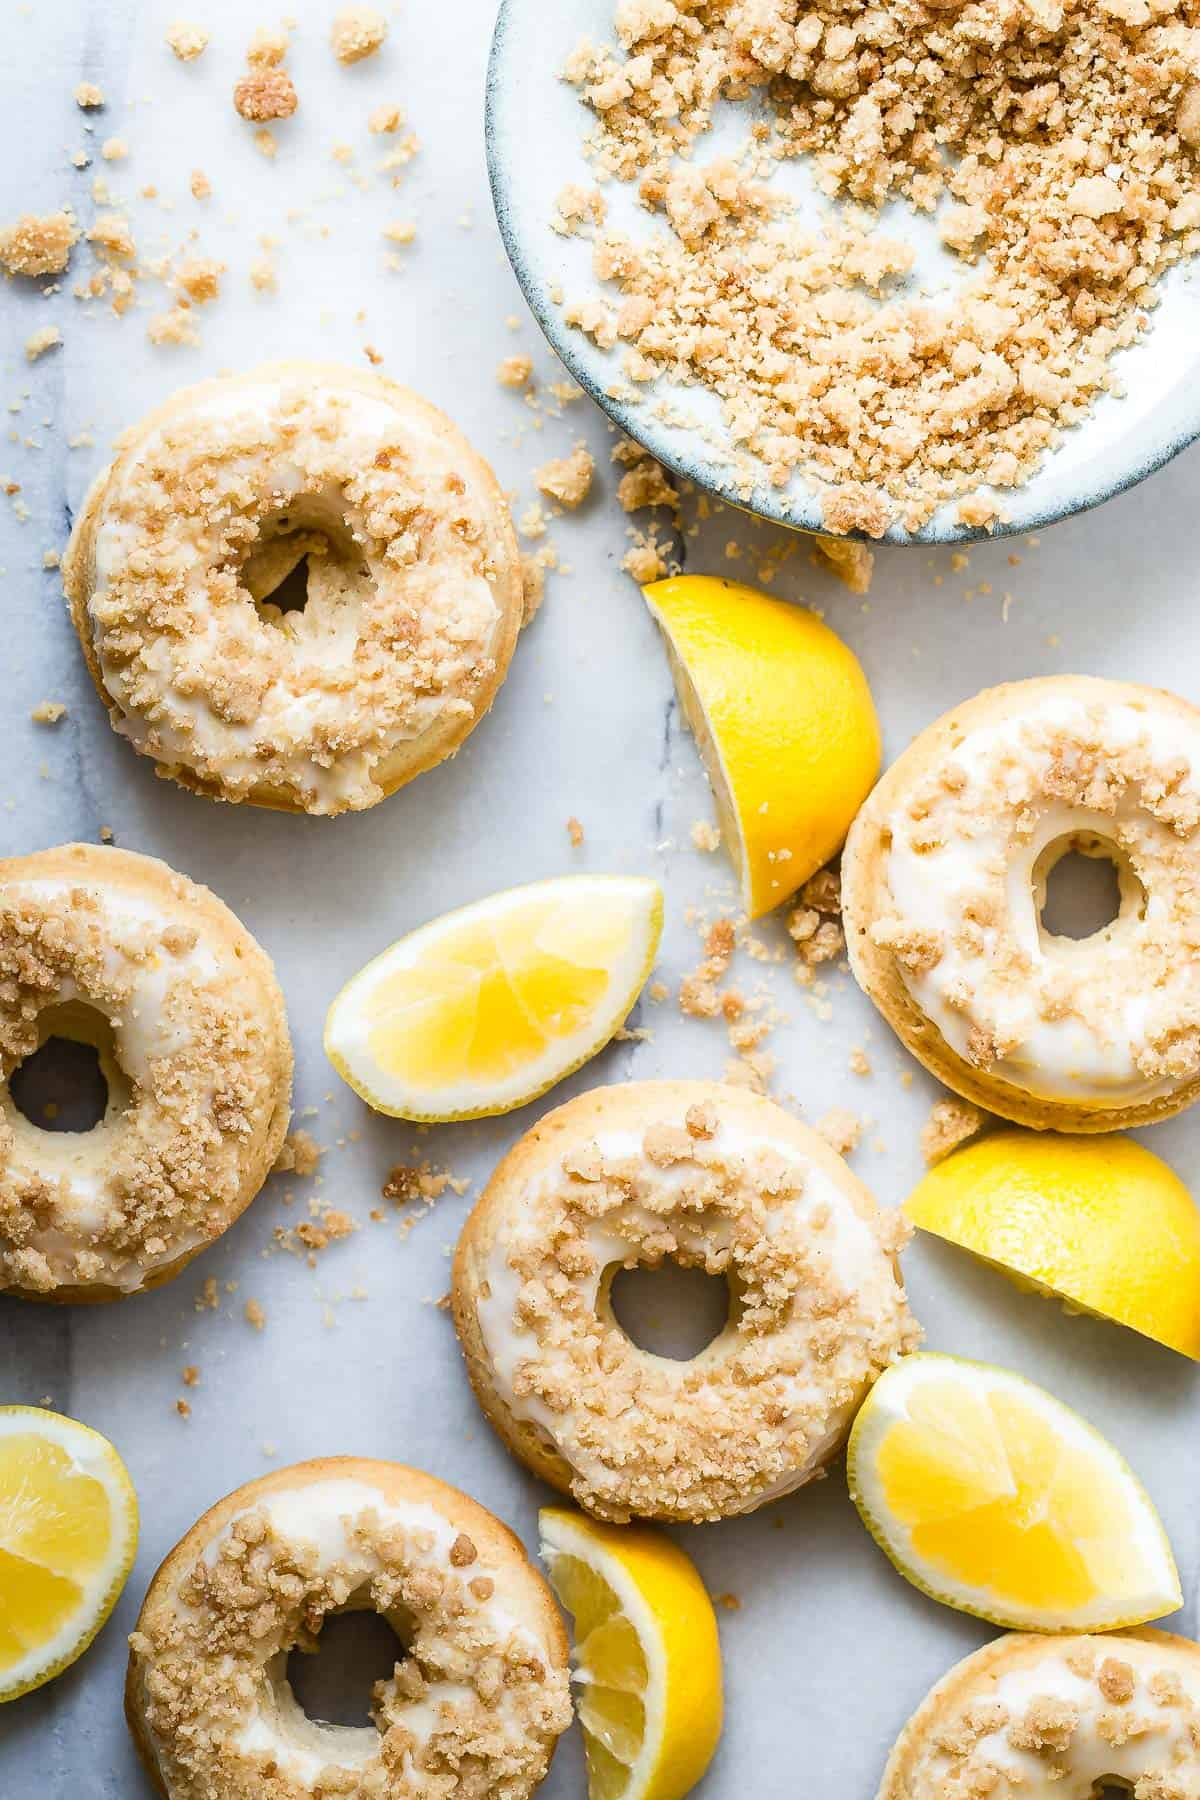 Lemon Donuts with a Crumble Topping